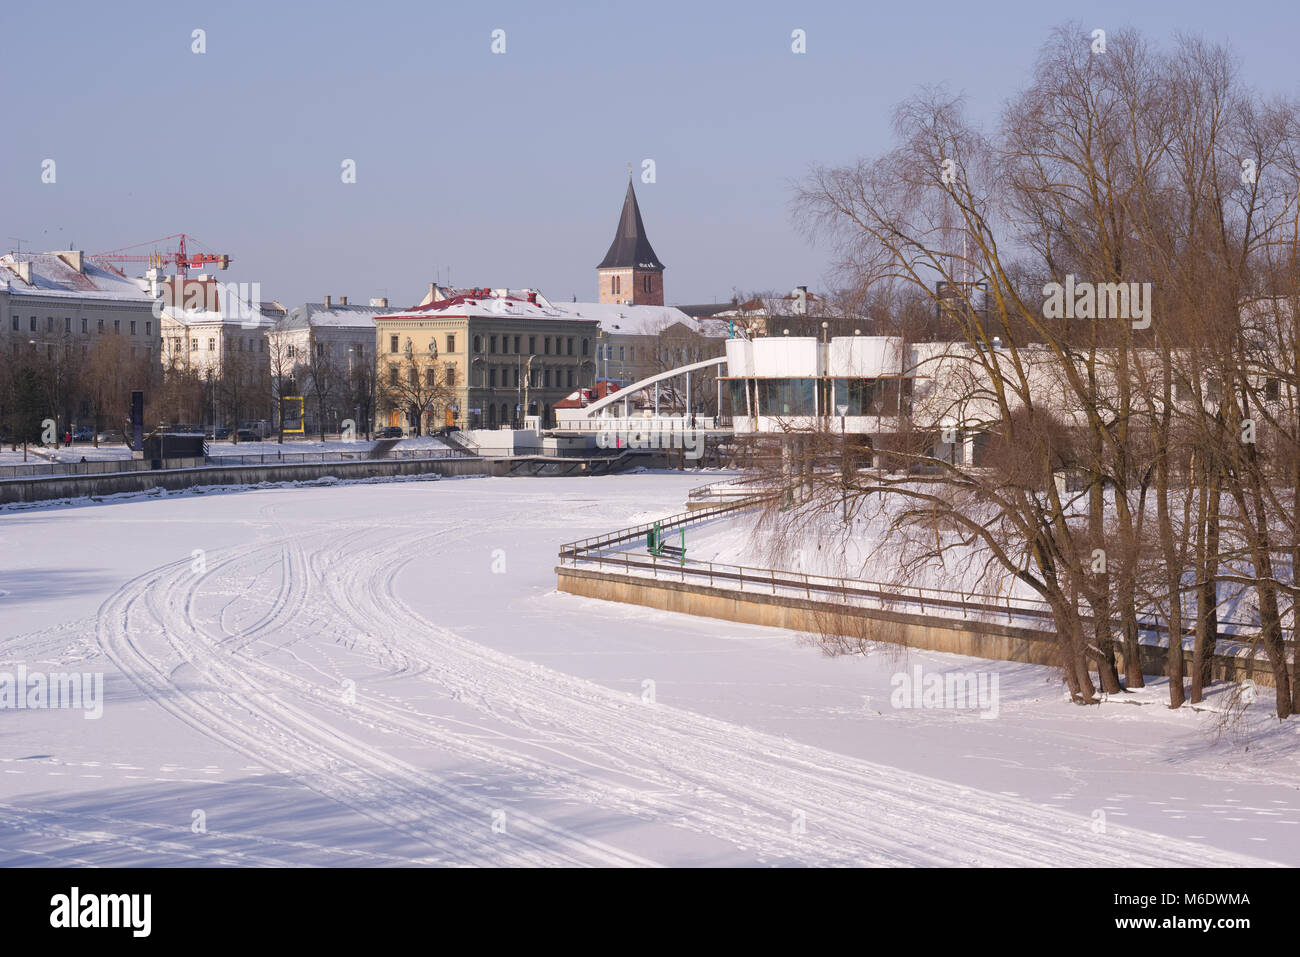 Winter view of Tartu, the icy river in the foreground. Estonia March 3, 2018 - Stock Image